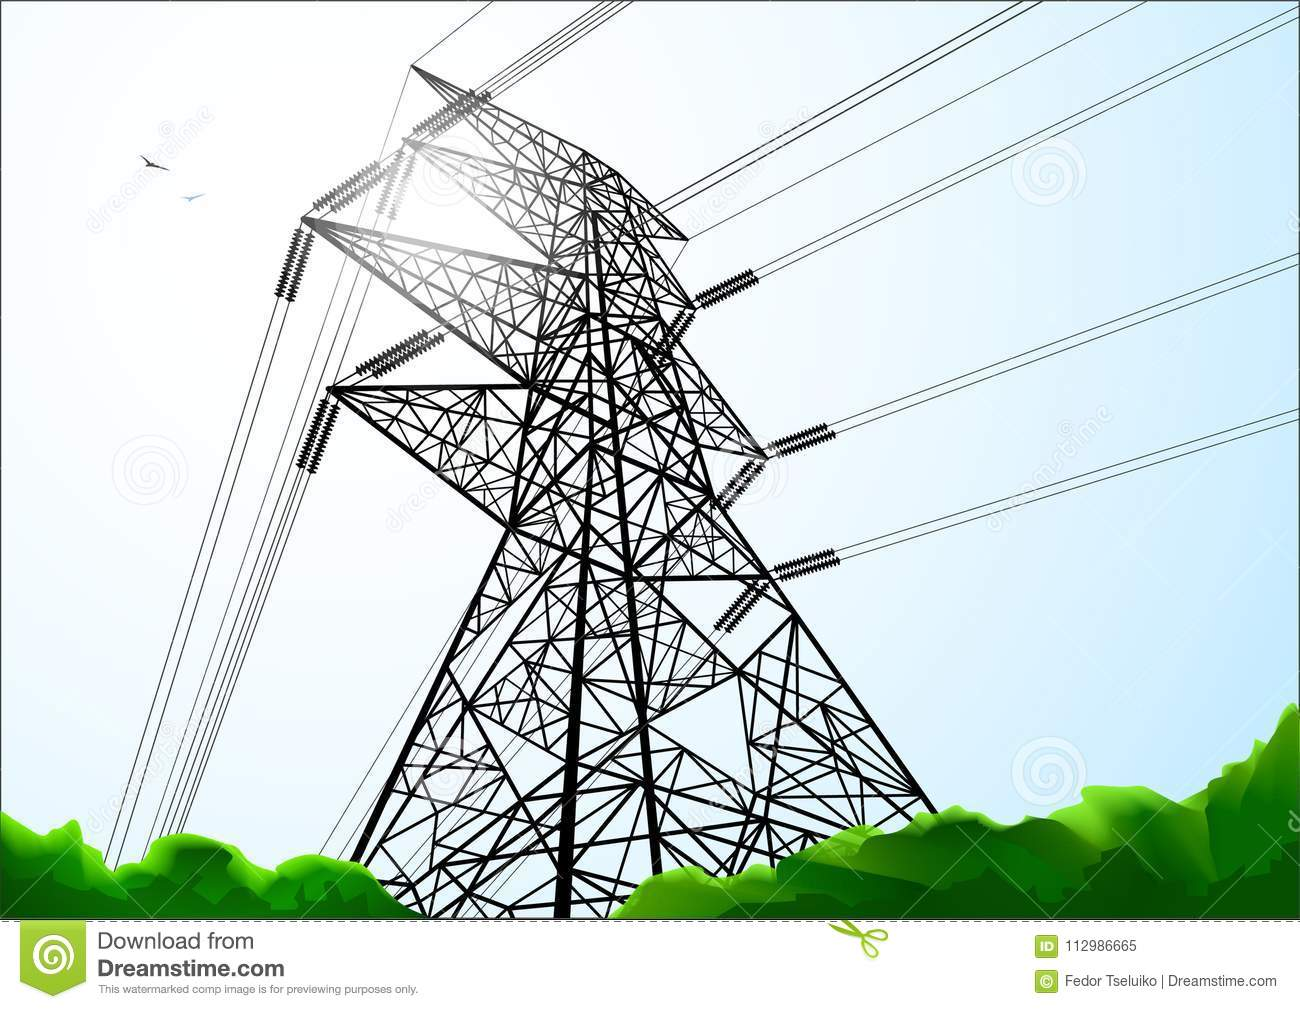 Power line construction. Black and white line art